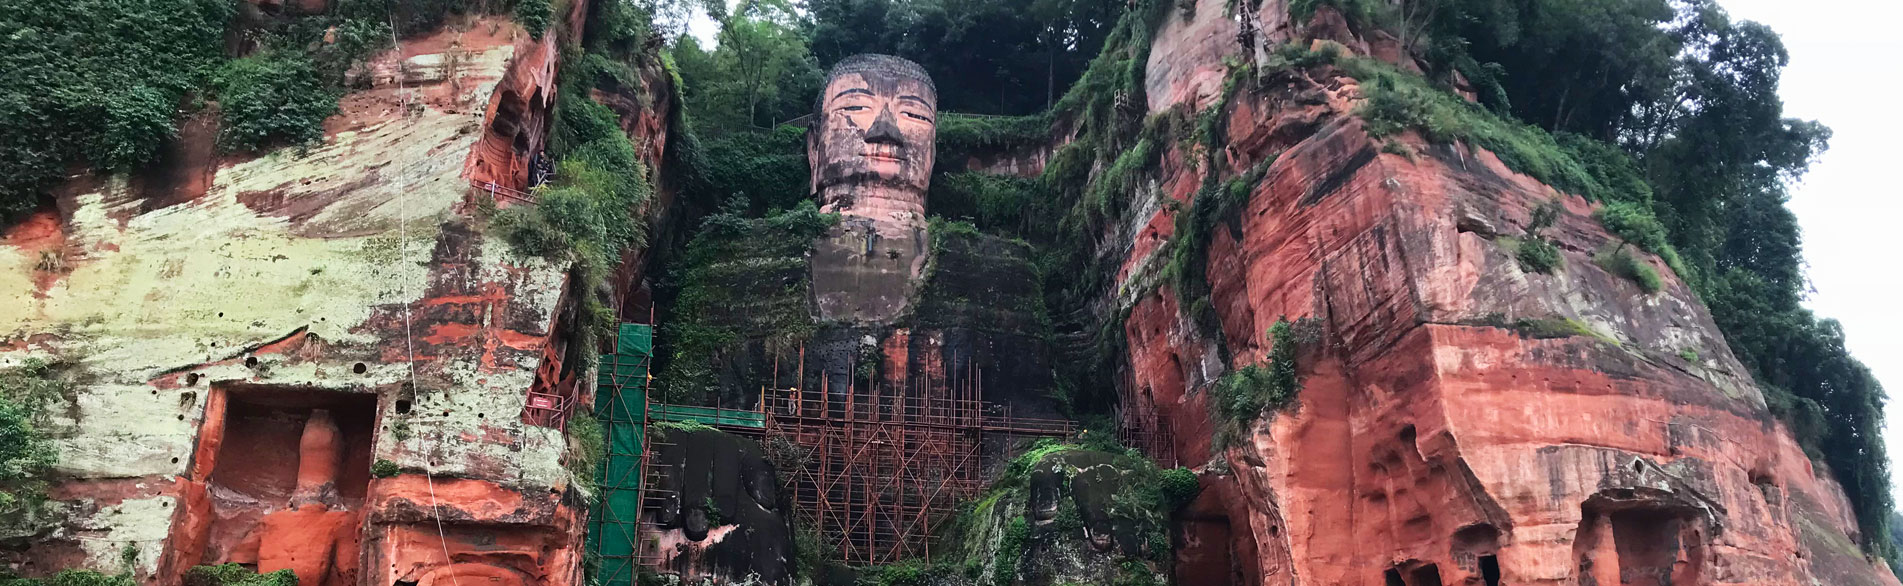 One-Day Leshan Giant Buddha and Tea Terrace Tour